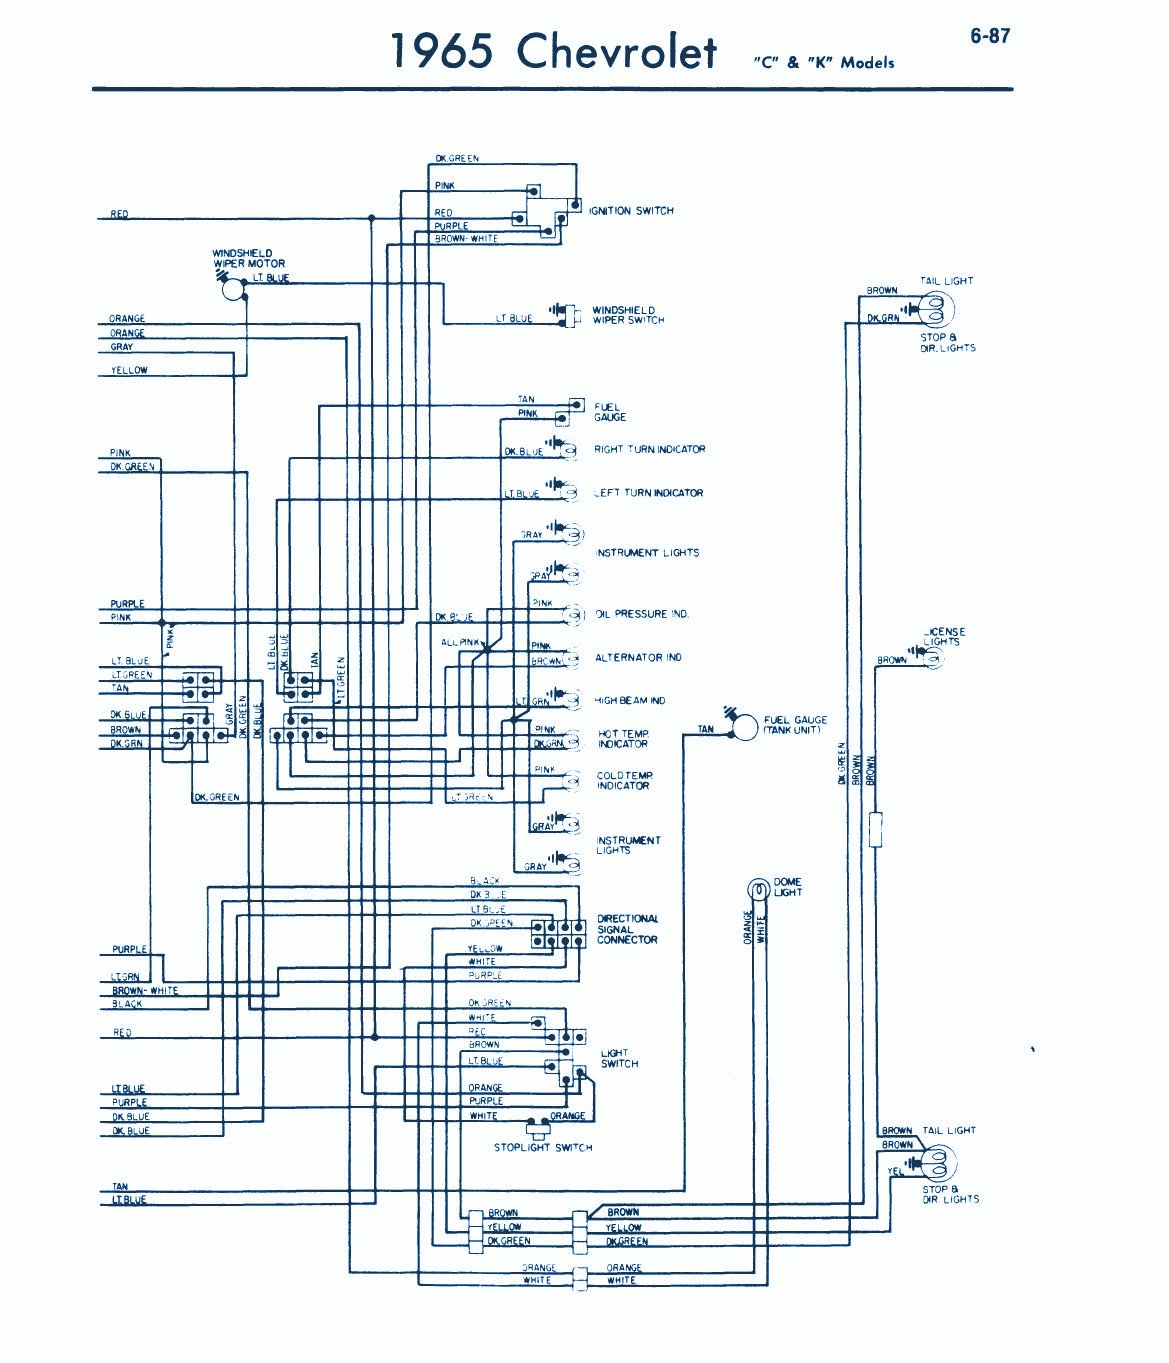 1965 chevrolet wiring diagram diagram for reference rh learnwiringdiagram  blogspot com 1965 chevy c20 wiring diagram 1965 chevrolet c10 wiring diagram